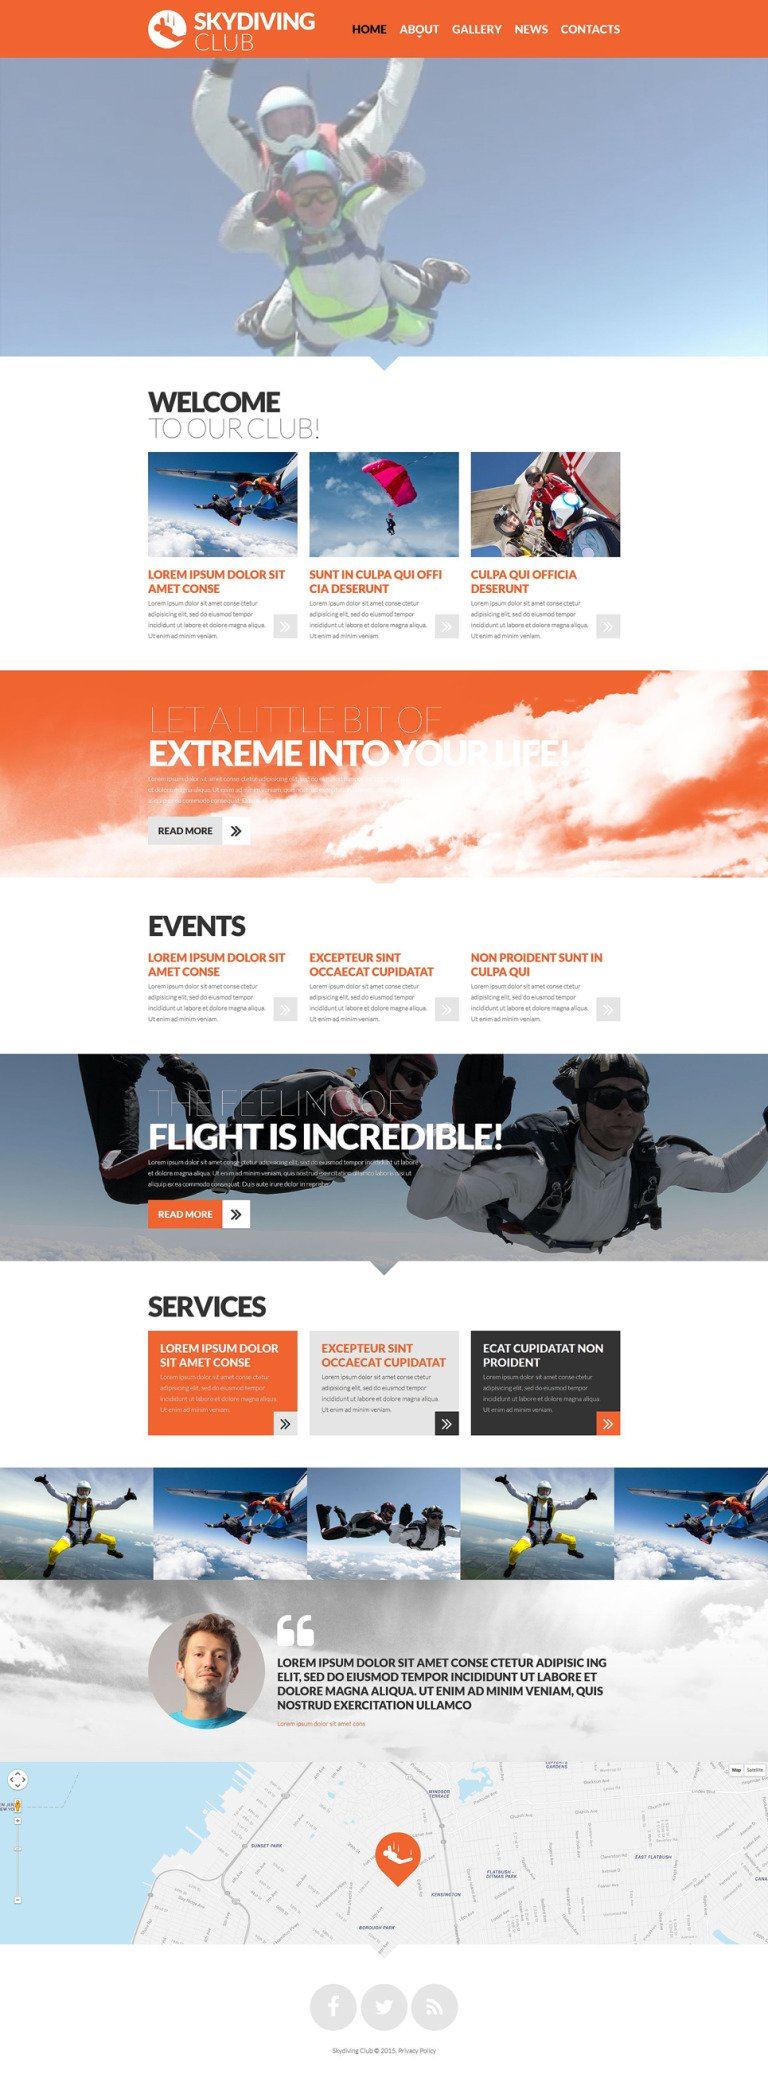 Skydiving Club Website Template New Screenshots BIG